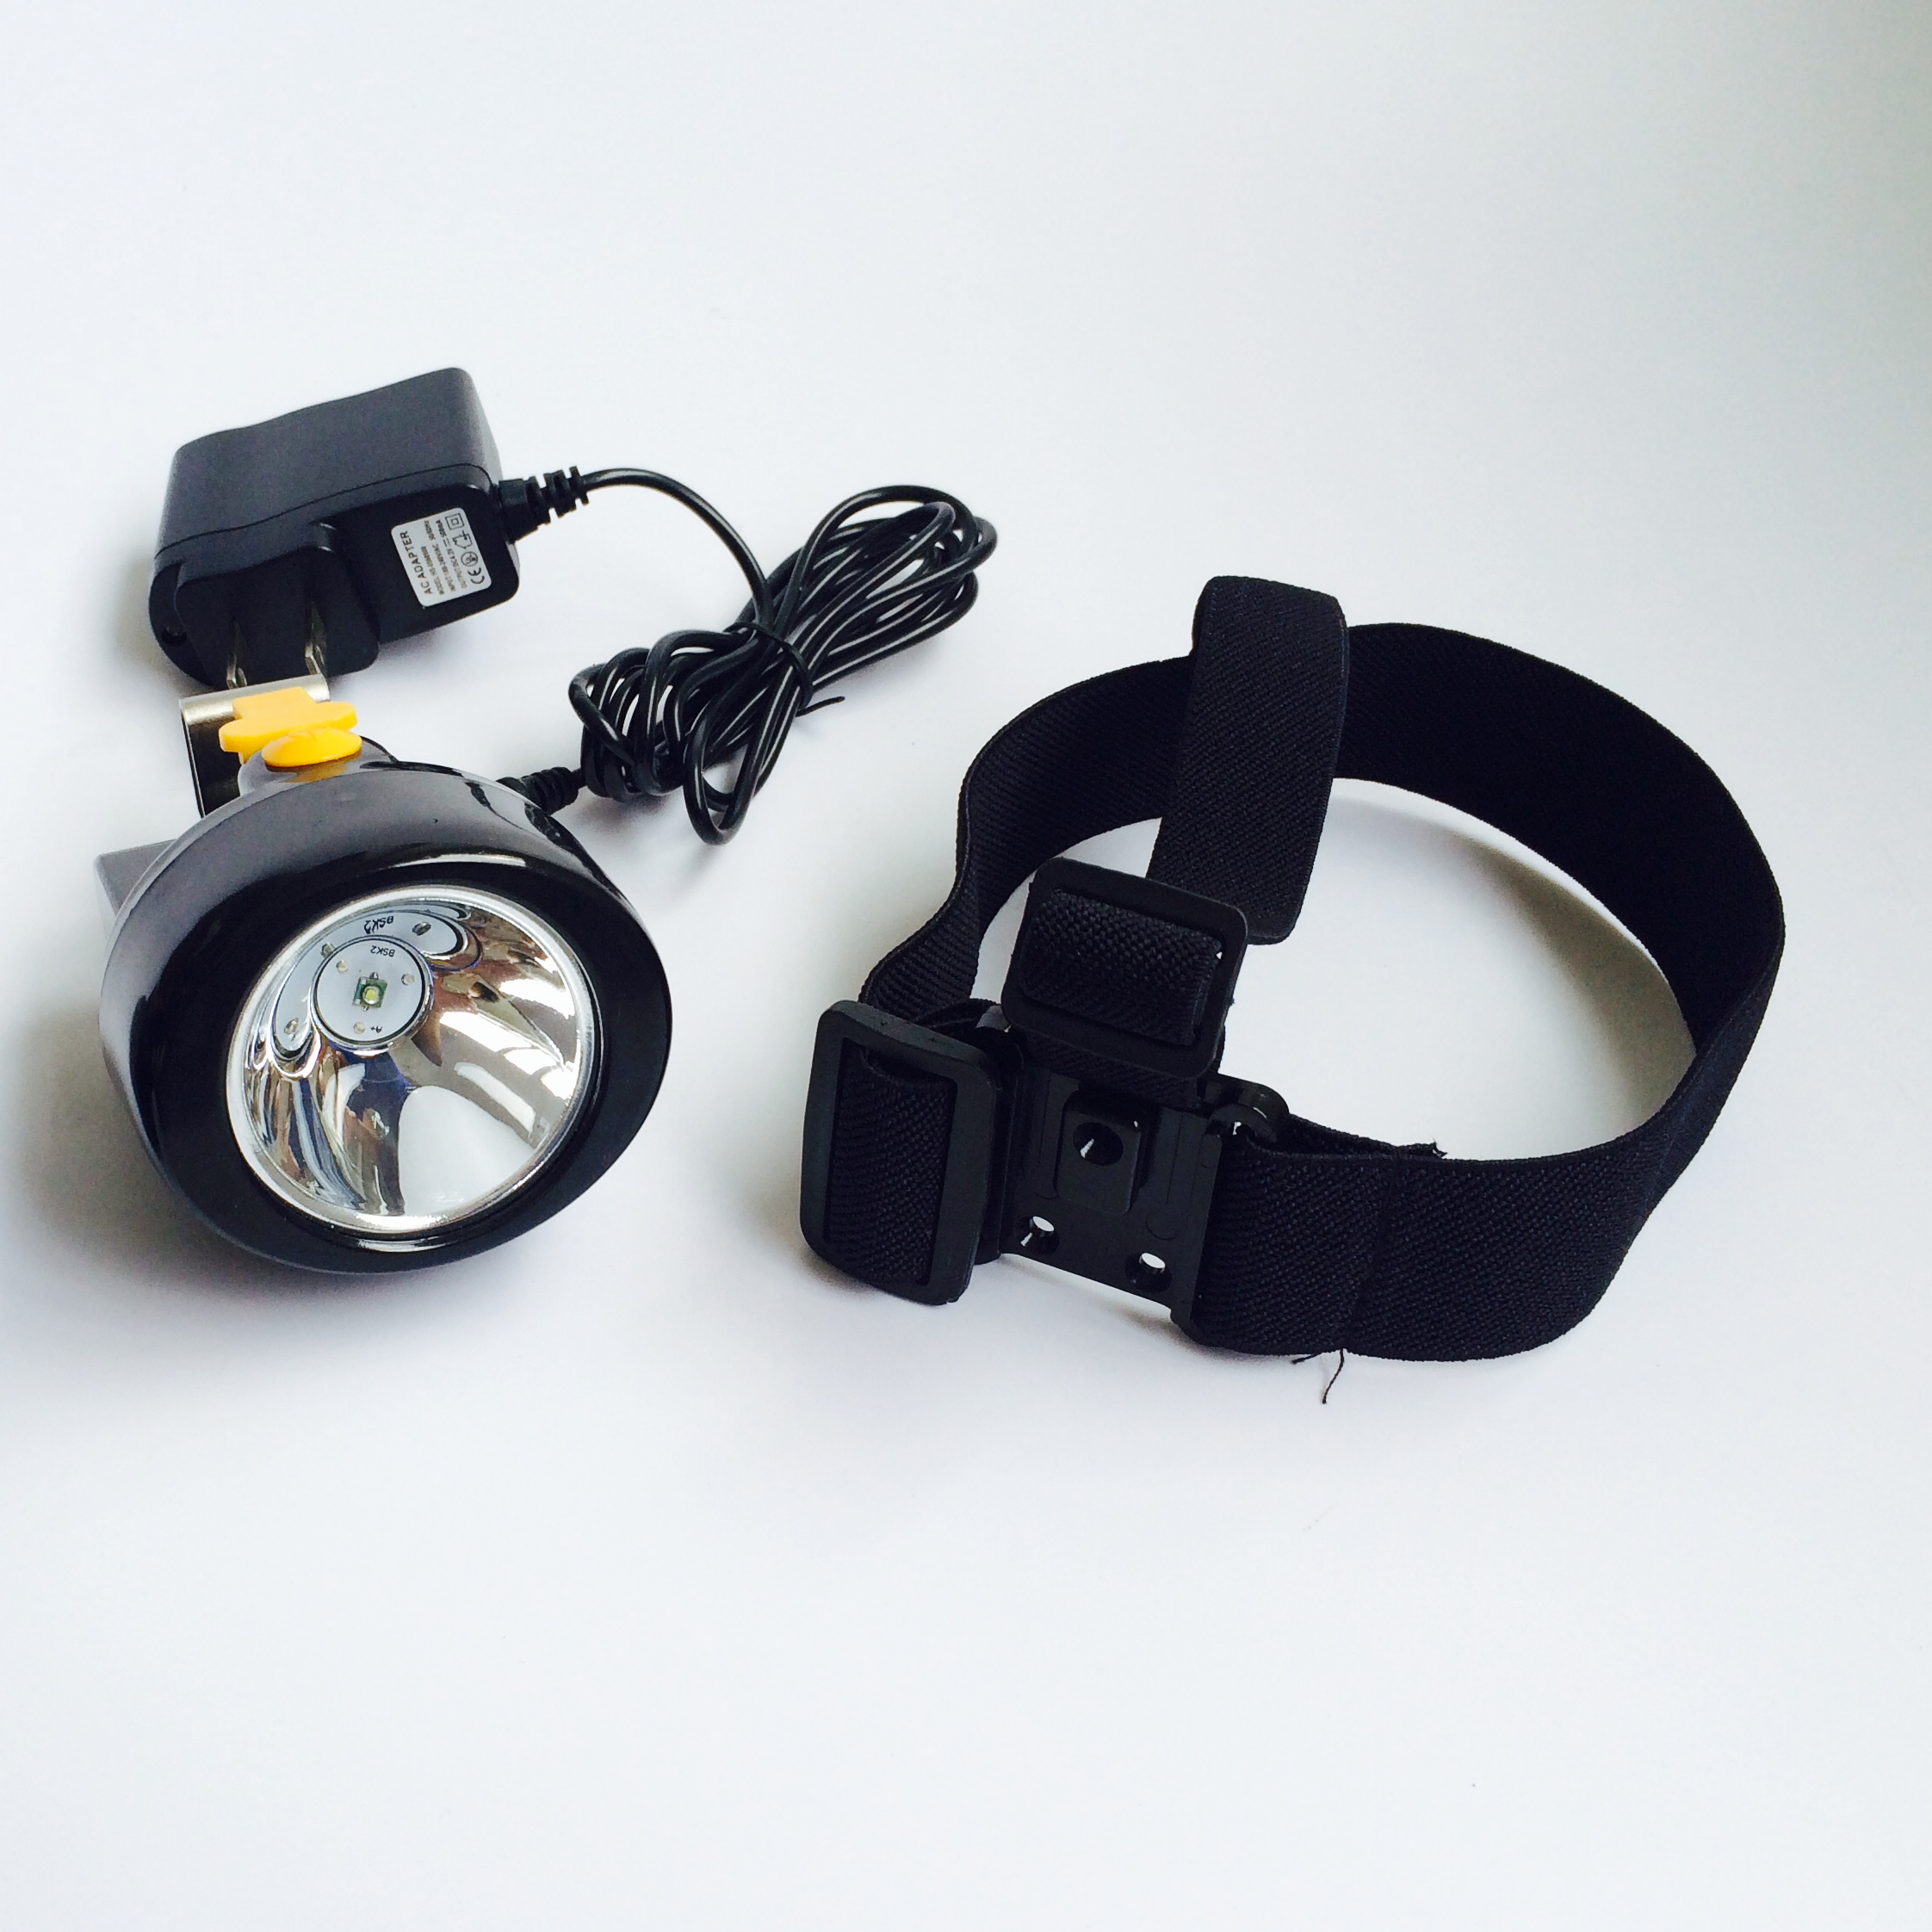 KL3LM(3W) led headlamp Li-ion battery Cordless Mining Cap Lamp rechargeable Lithium Batteries miners helmet light Camping hunting fishing fire control lighting